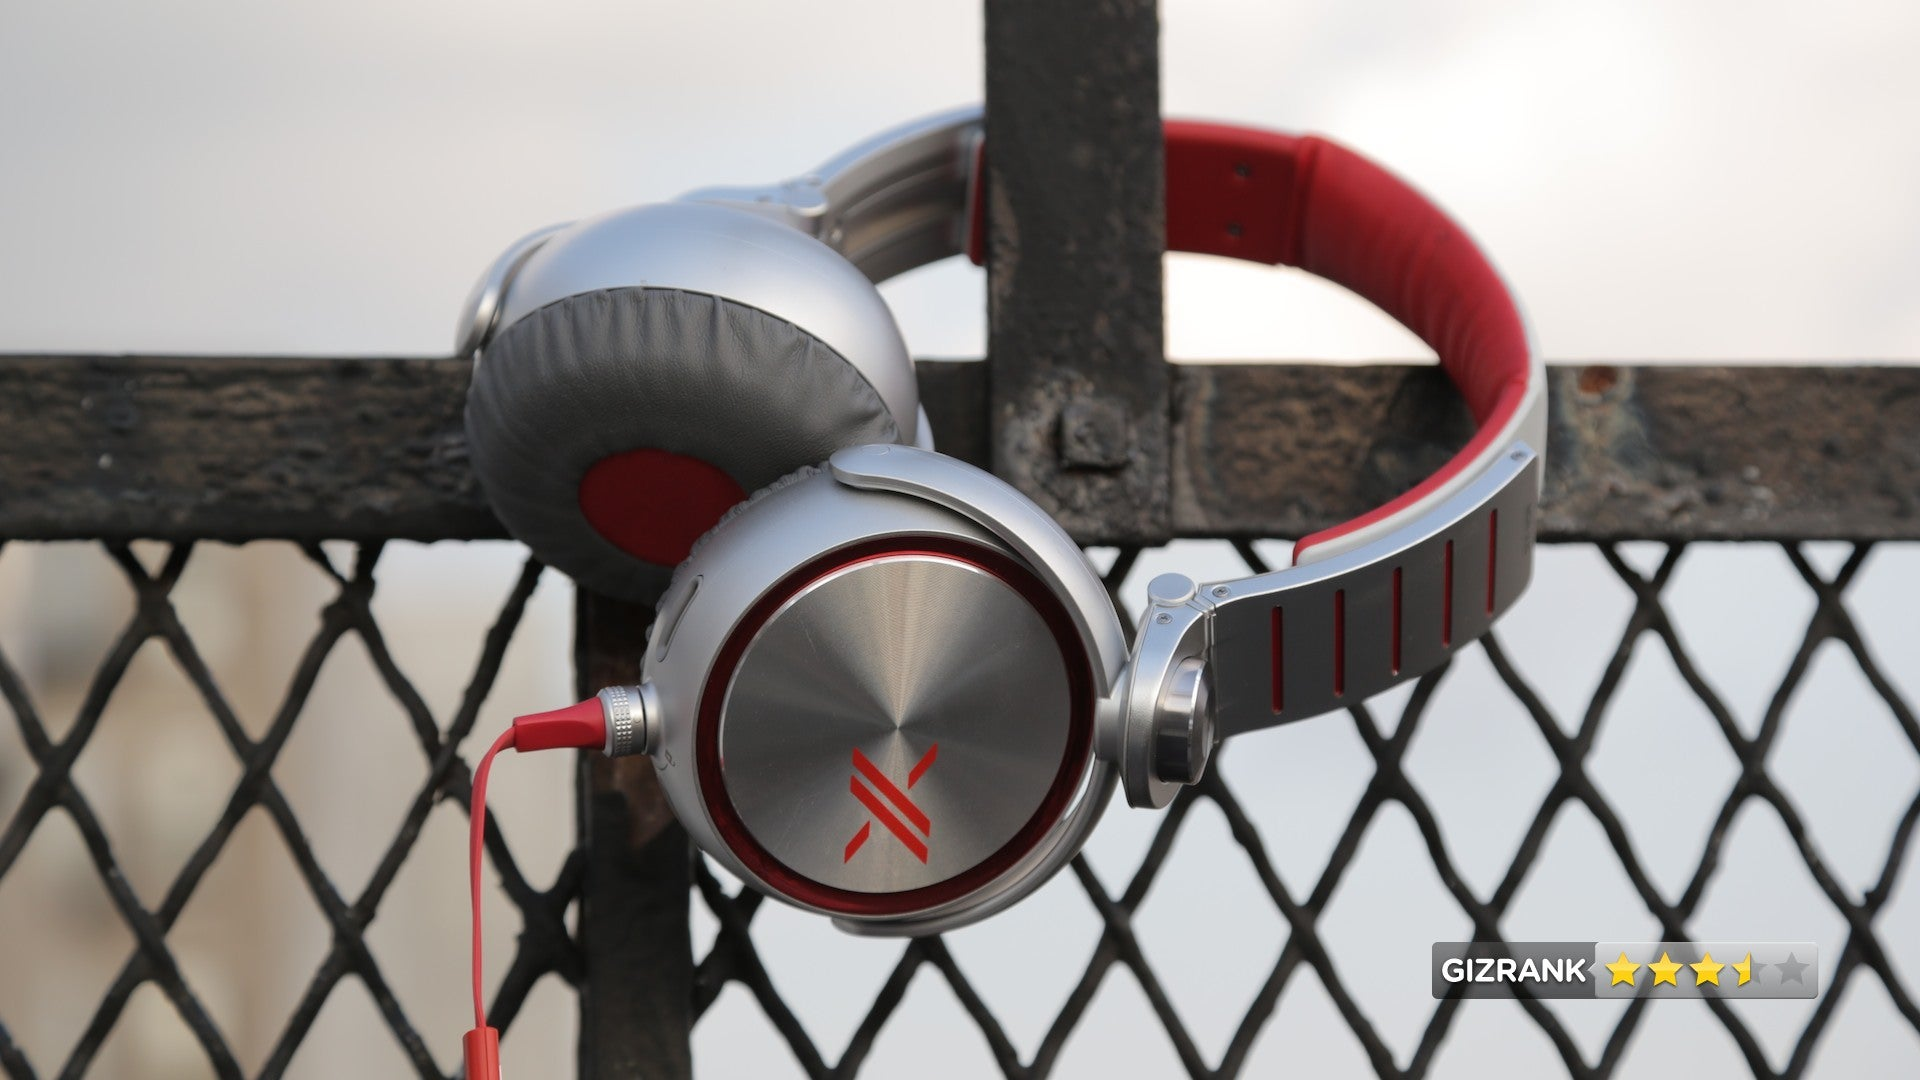 Sony X Factor Headphones Review: I Somehow Love These Gross, Gaudy Celebrity Headphones